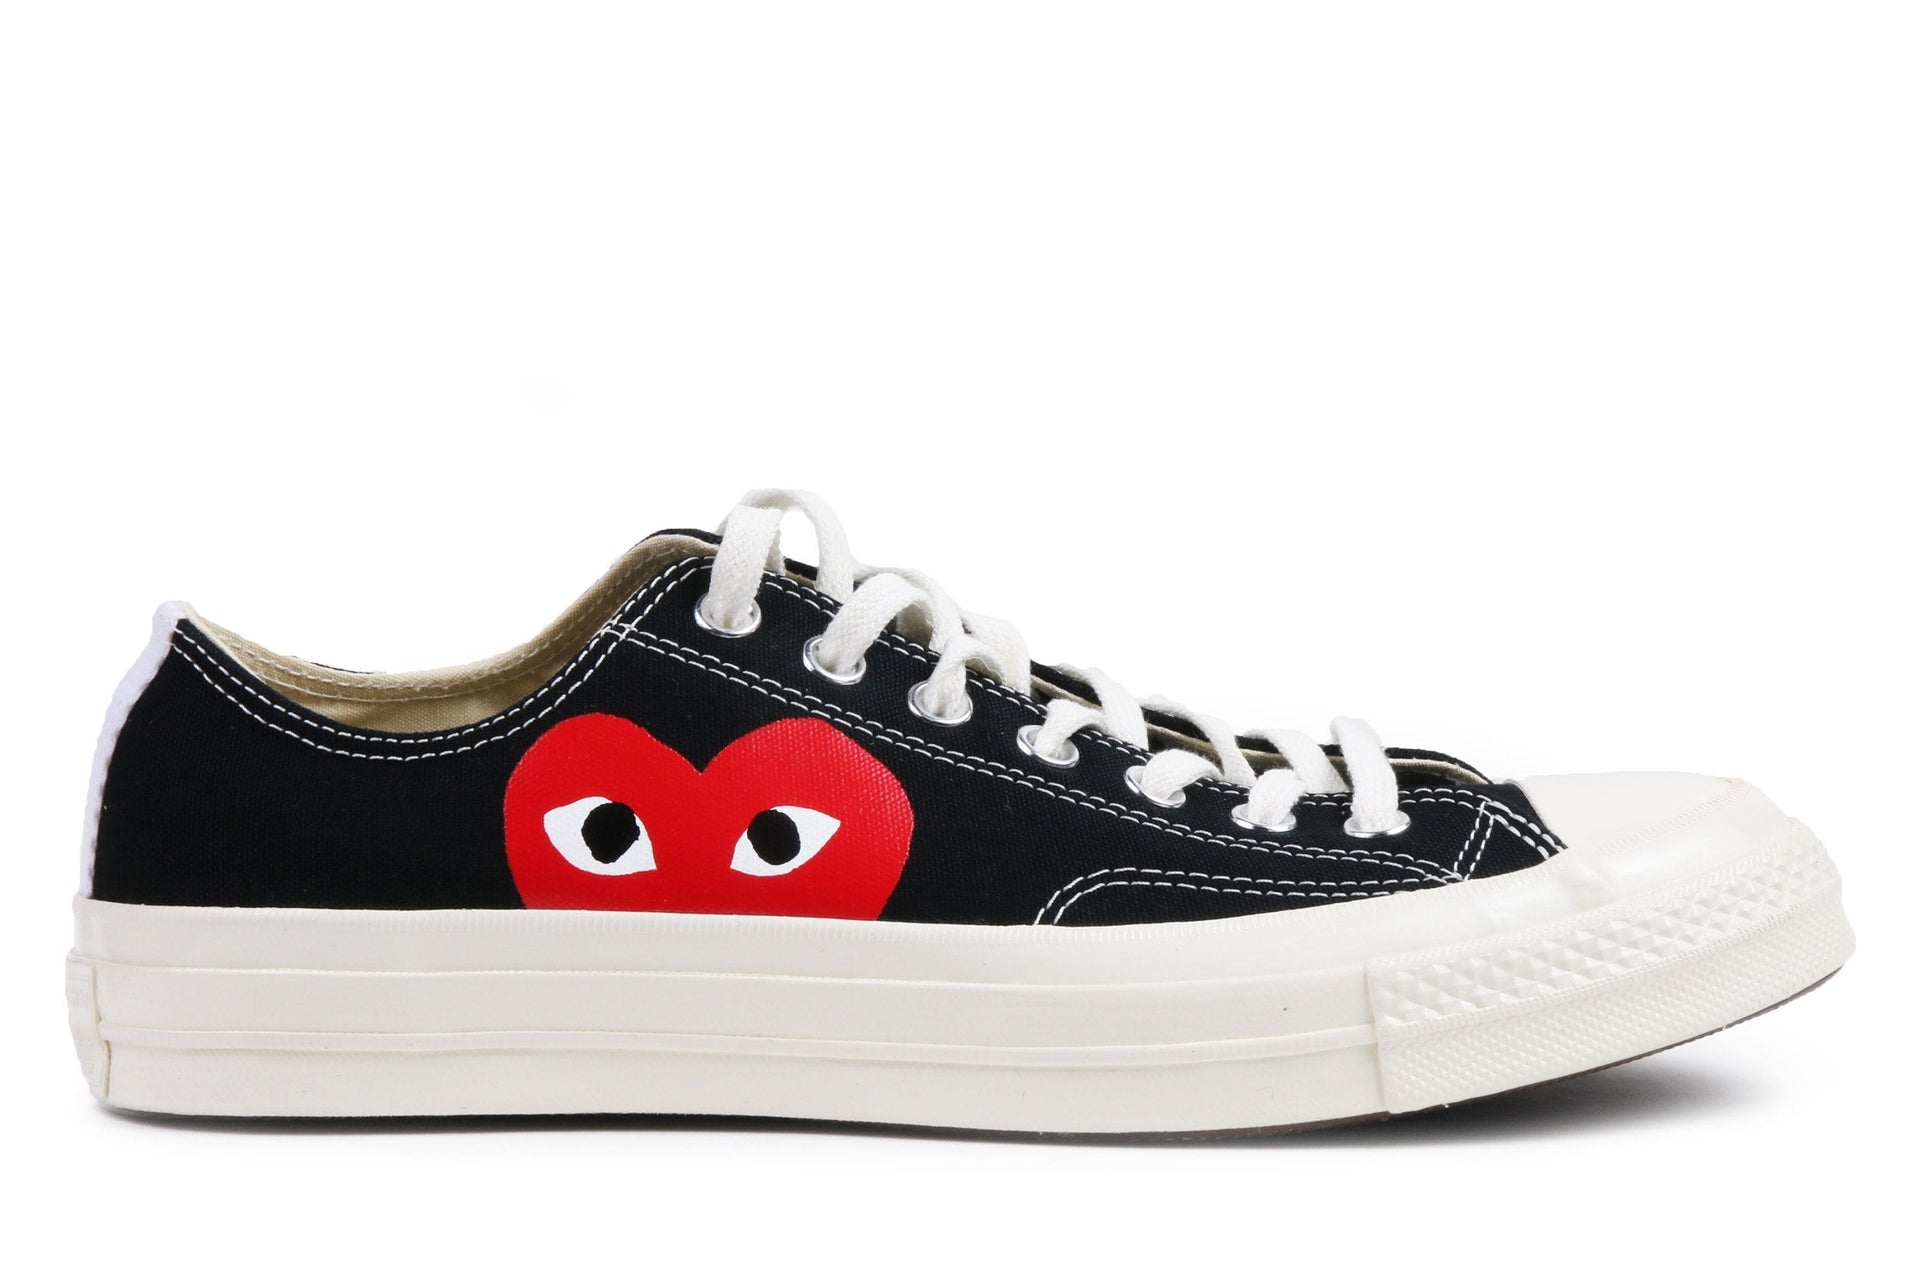 CT 70 CDG PLAY OX LOW 150206C